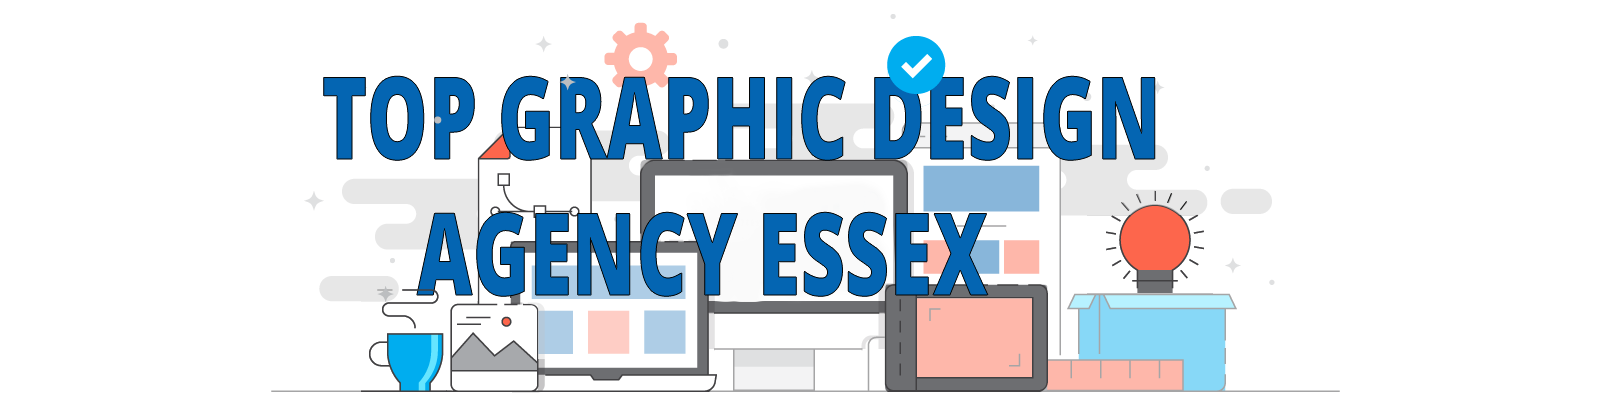 seek social top graphic design agency essex header with transparent background